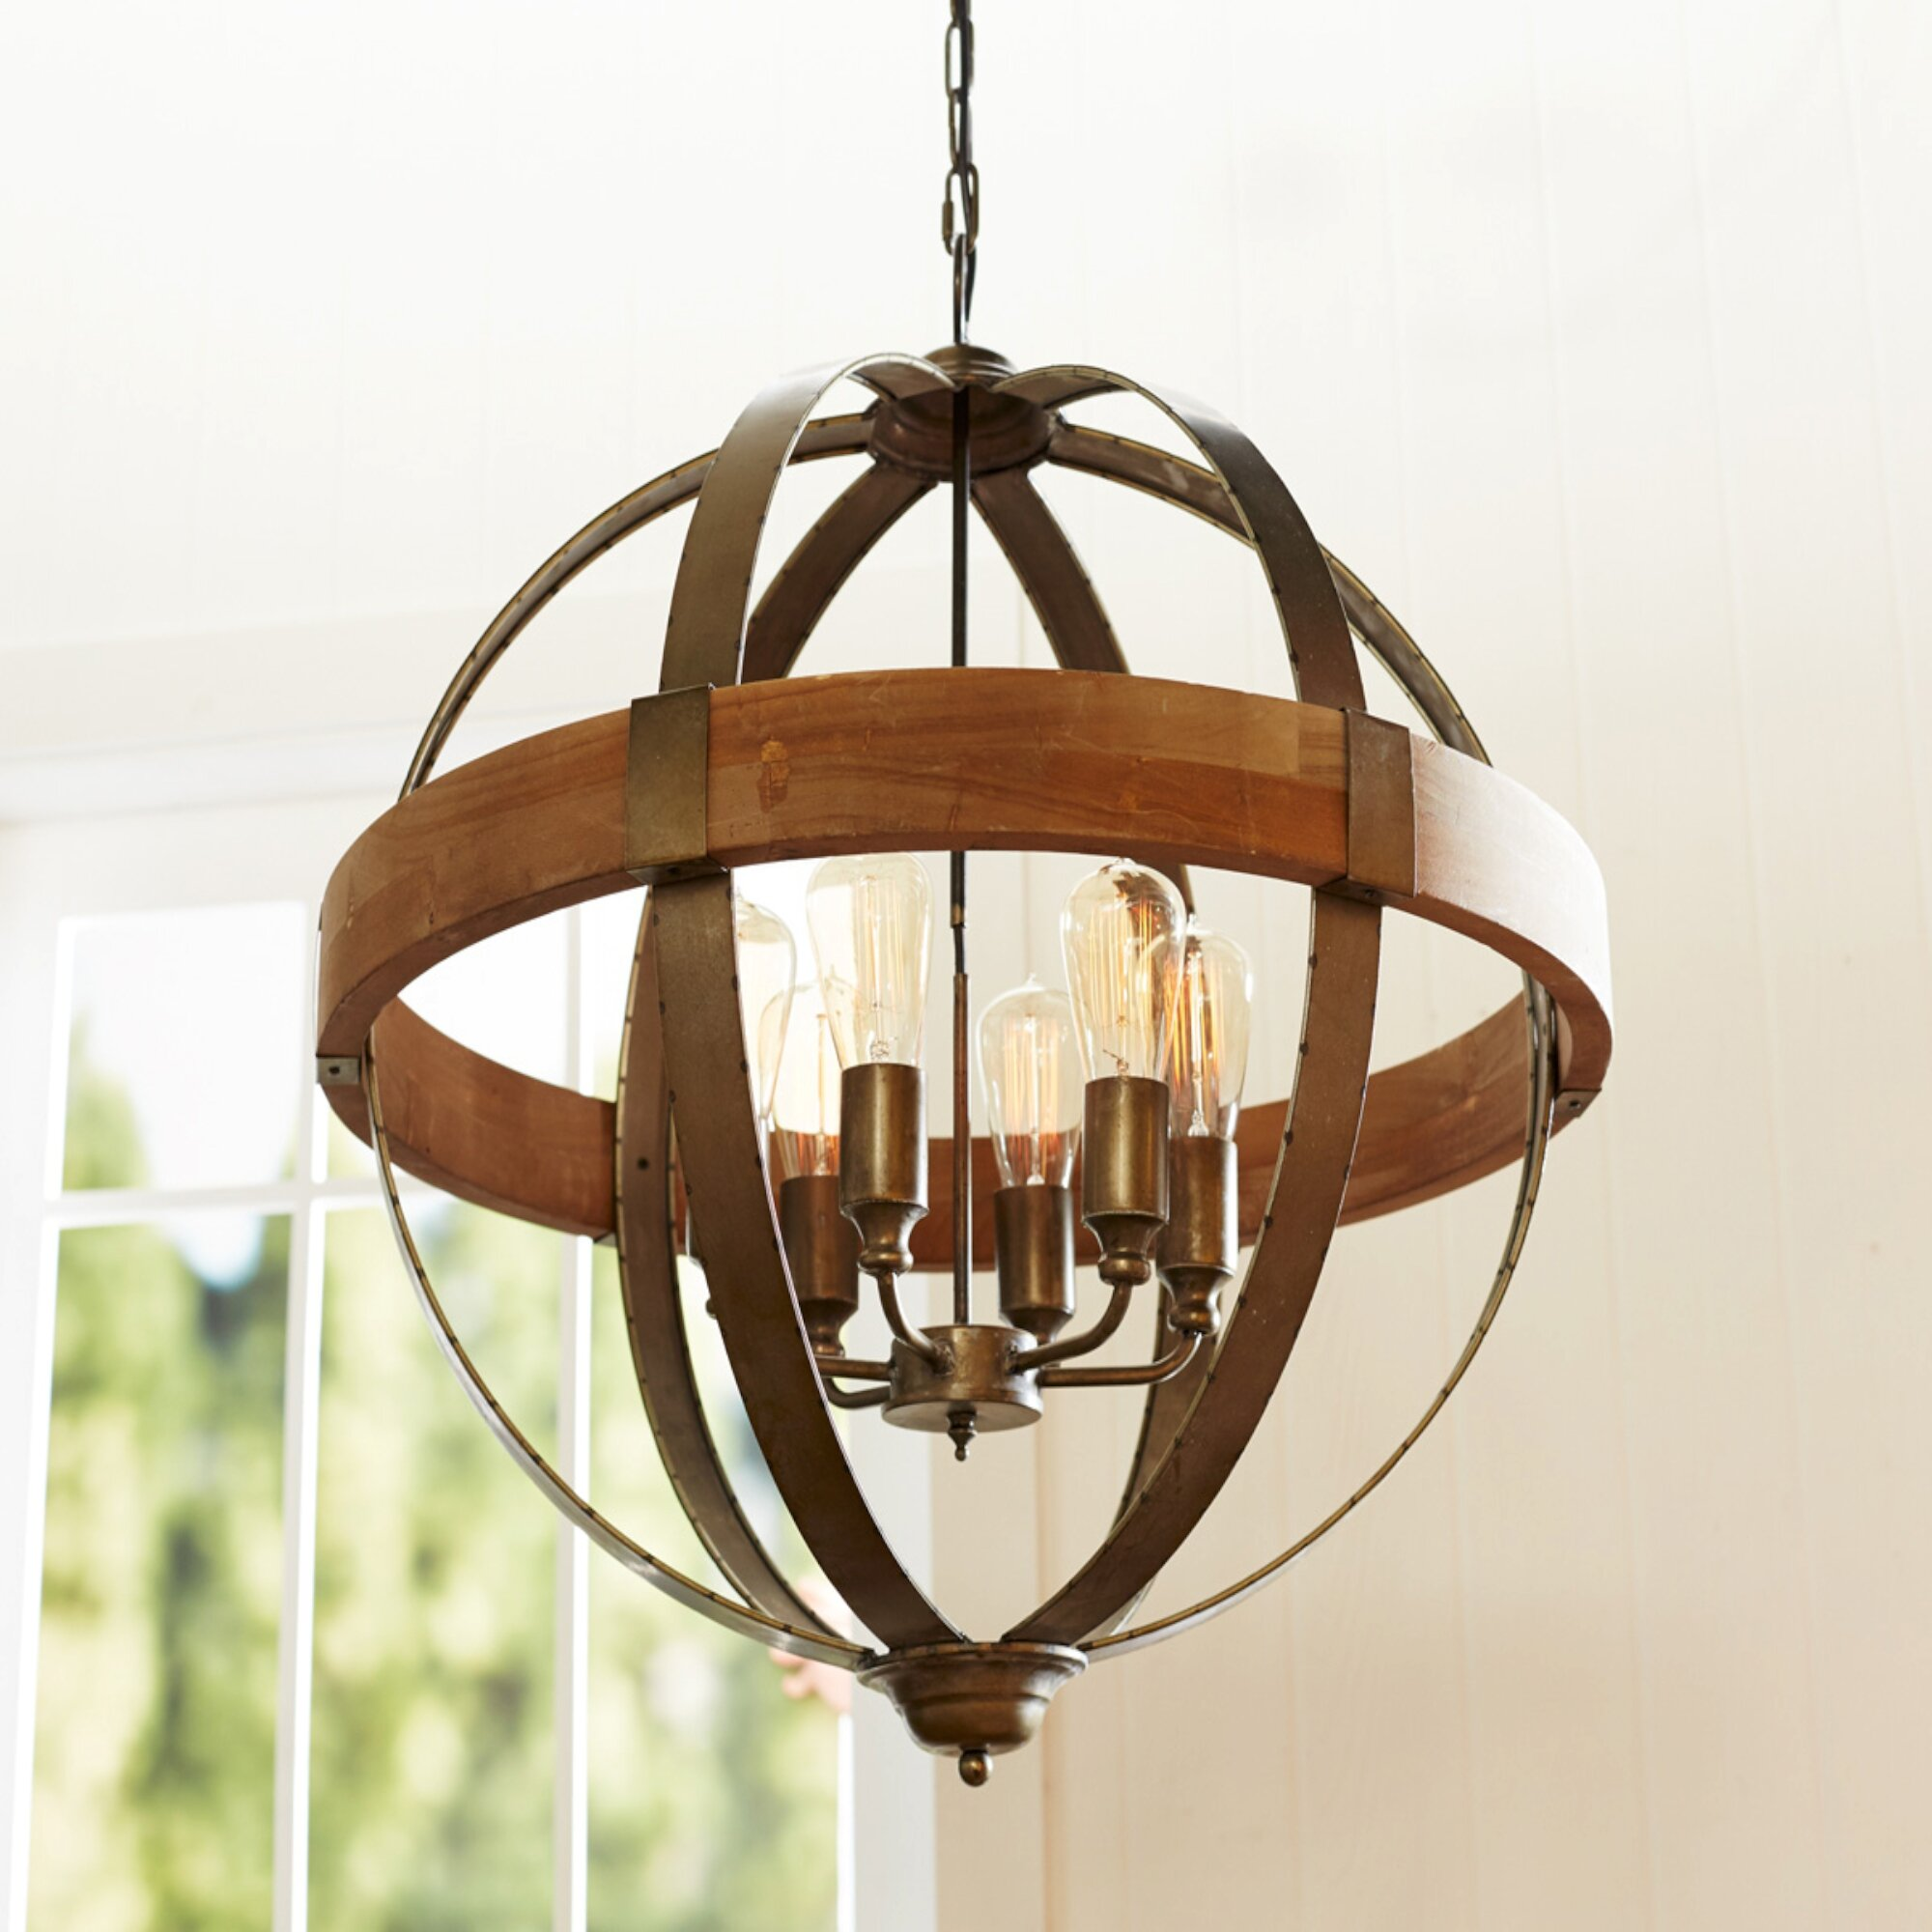 The Holiday Aisle Knute Orb 6 Light Globe Pendant Wayfair